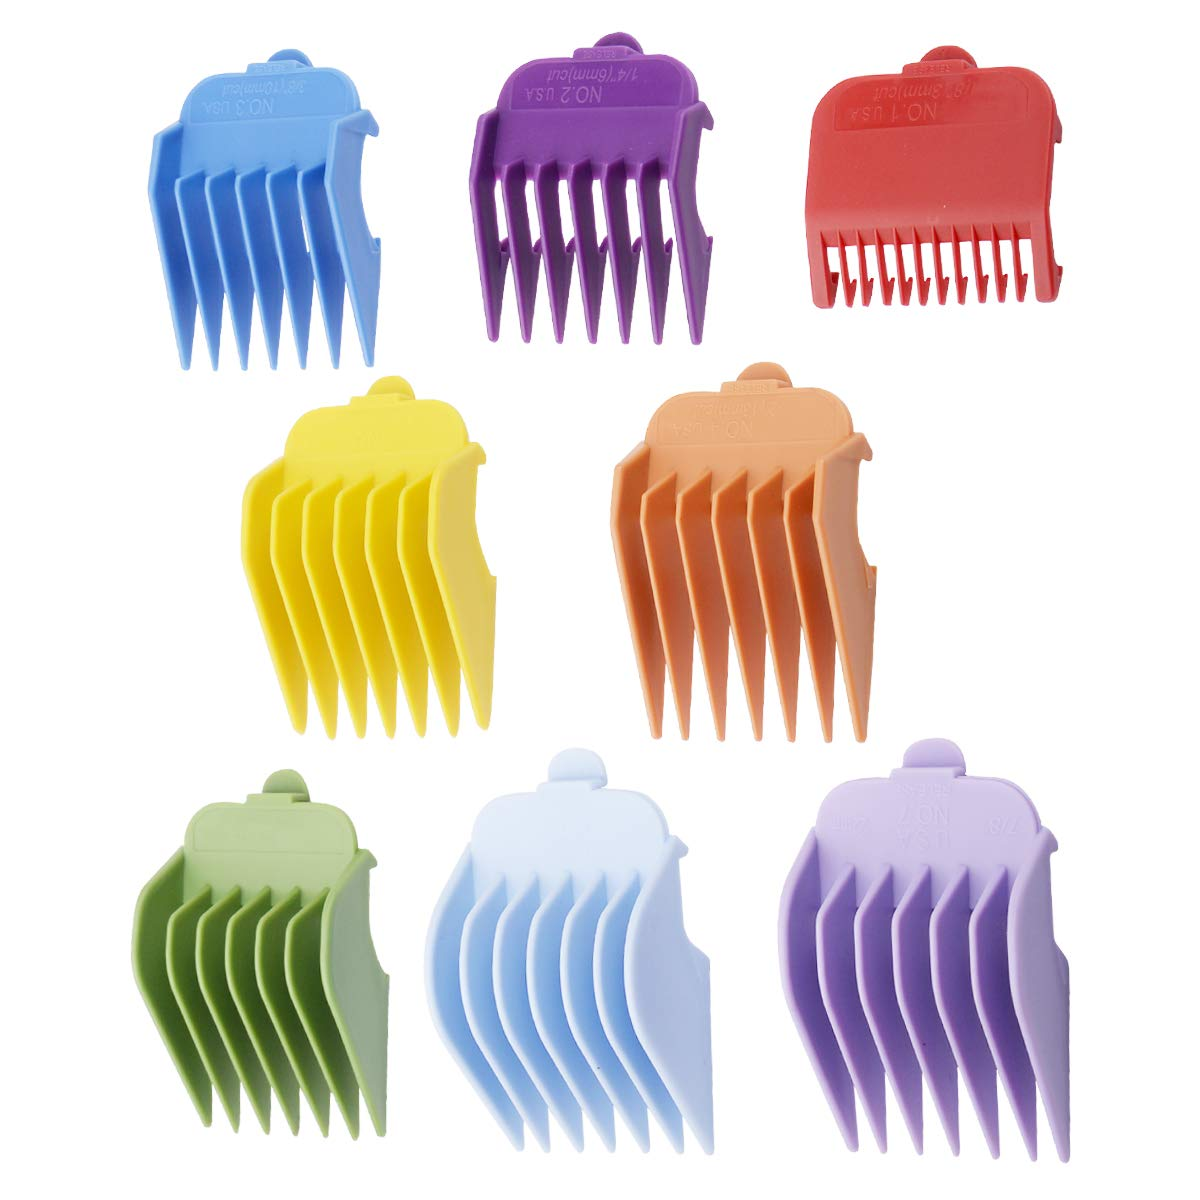 Great Product - Replacement Combs For Wahl Clippers - No Need to Purchase New Clippers